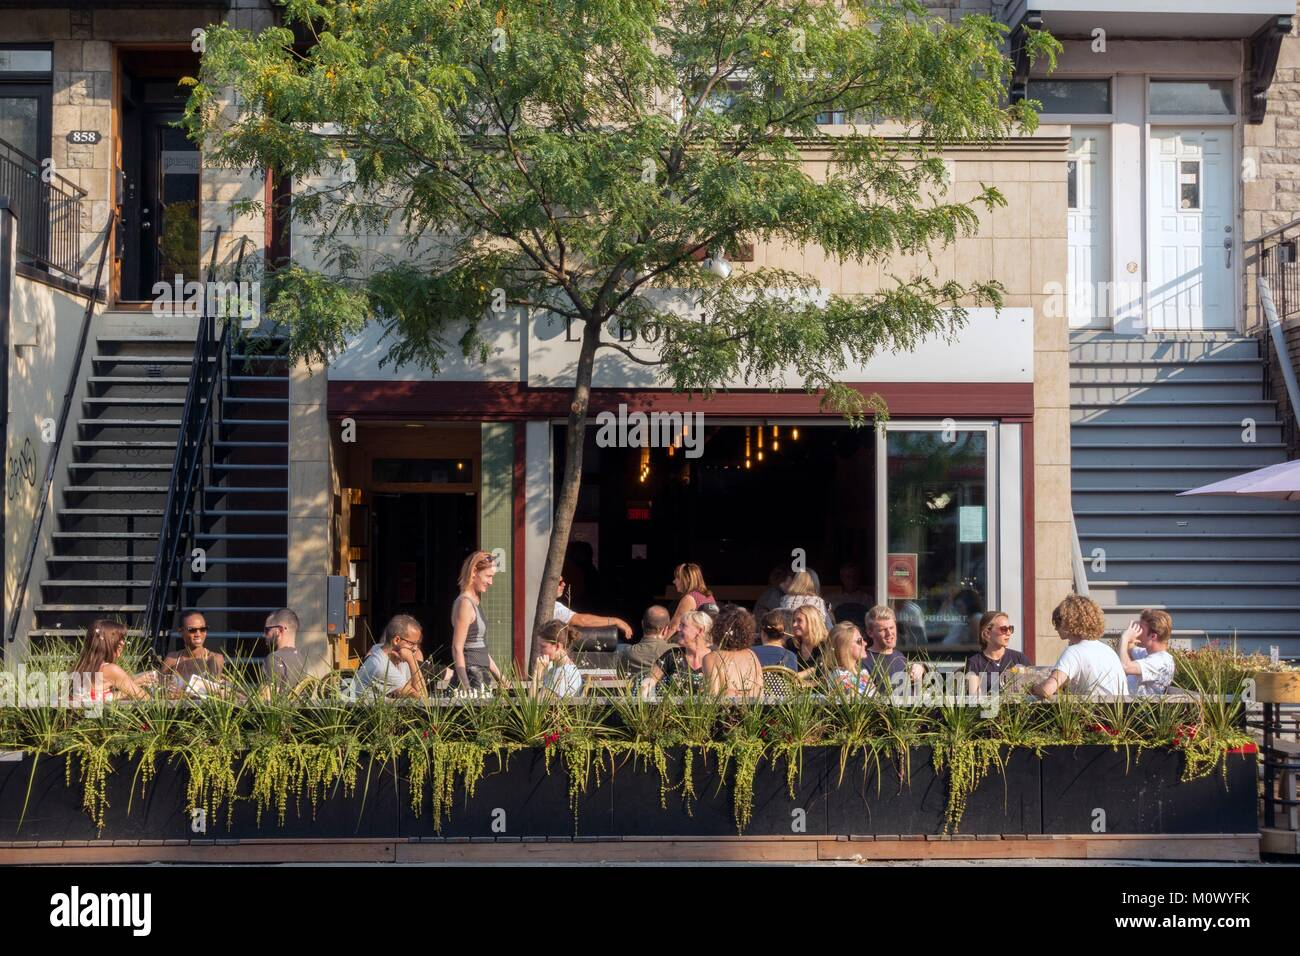 Canada,Quebec province,Montreal,Plateau-Mont-Royal neighborhood,Mont-Royal Avenue and its summer terraces,Le Boudoir - Stock Image